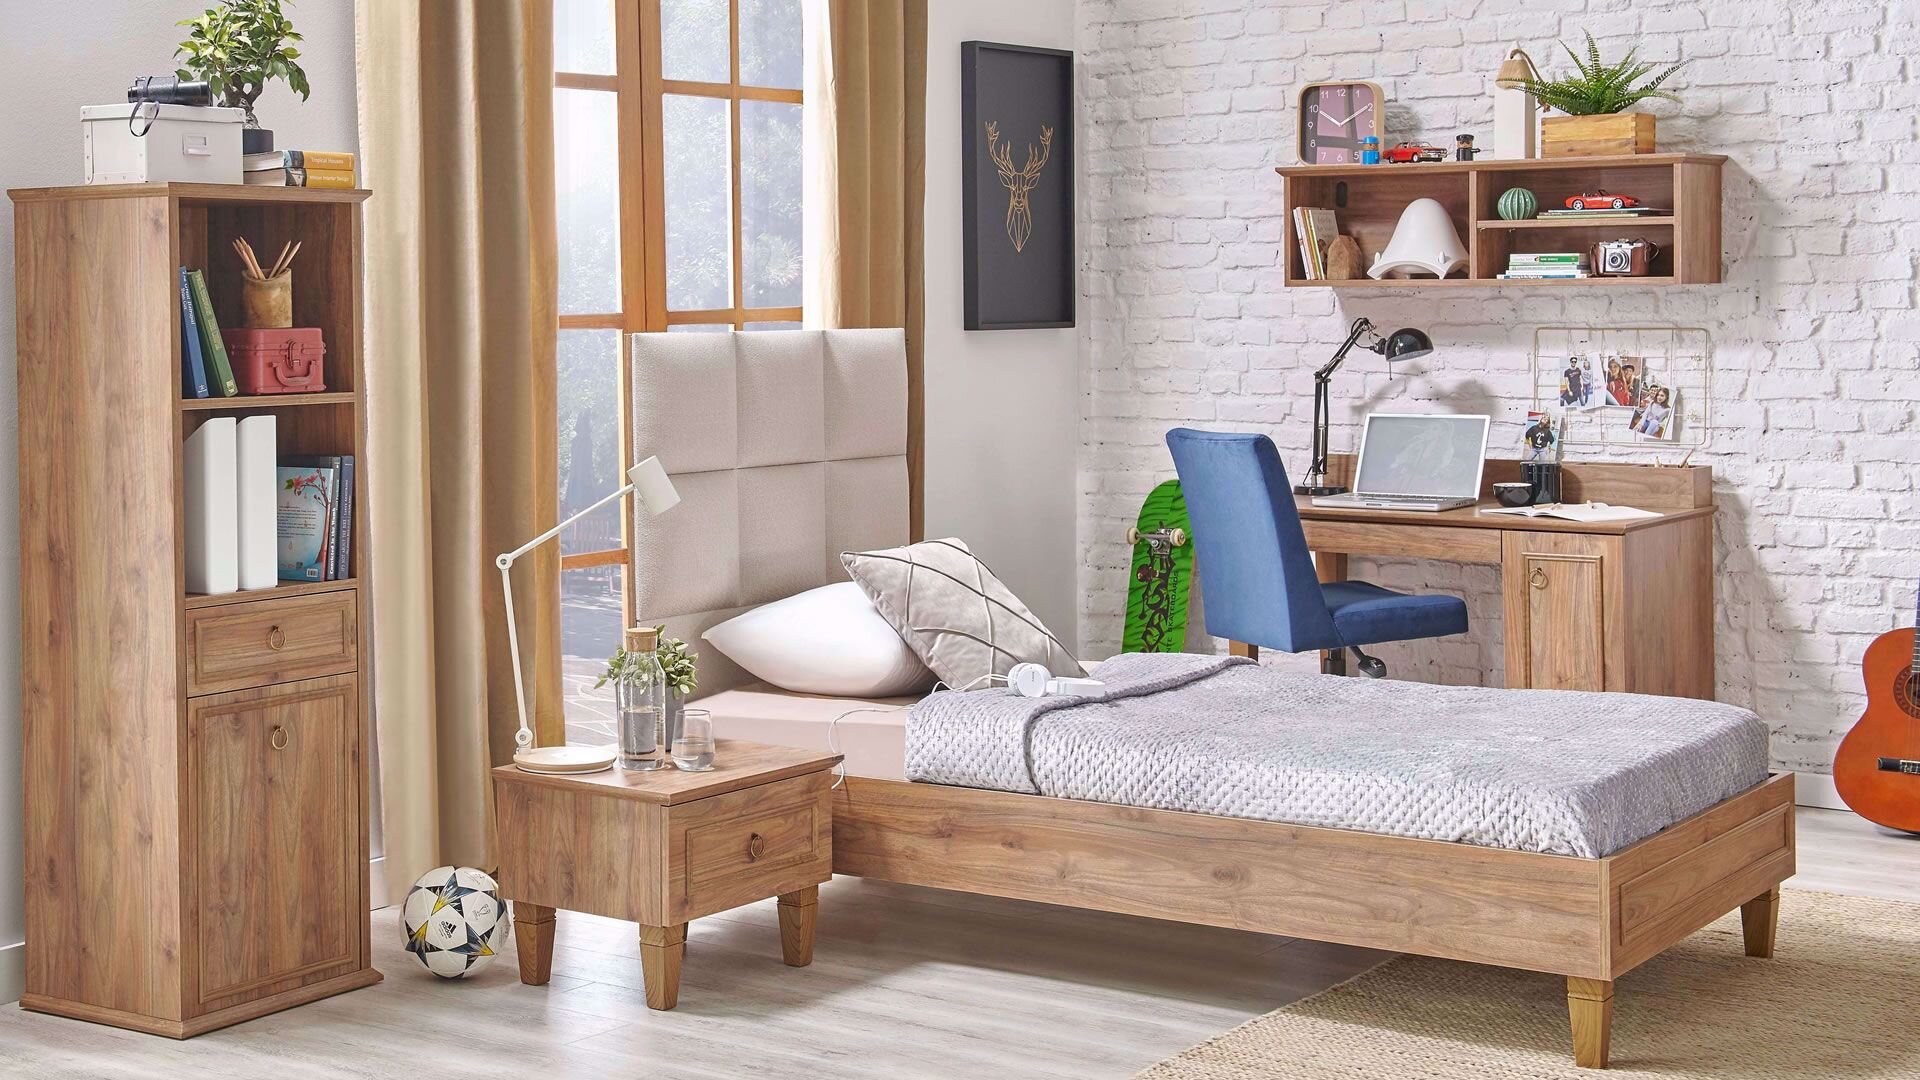 Cara Bedstead 100 cm (With Storage) (Headboard Included)